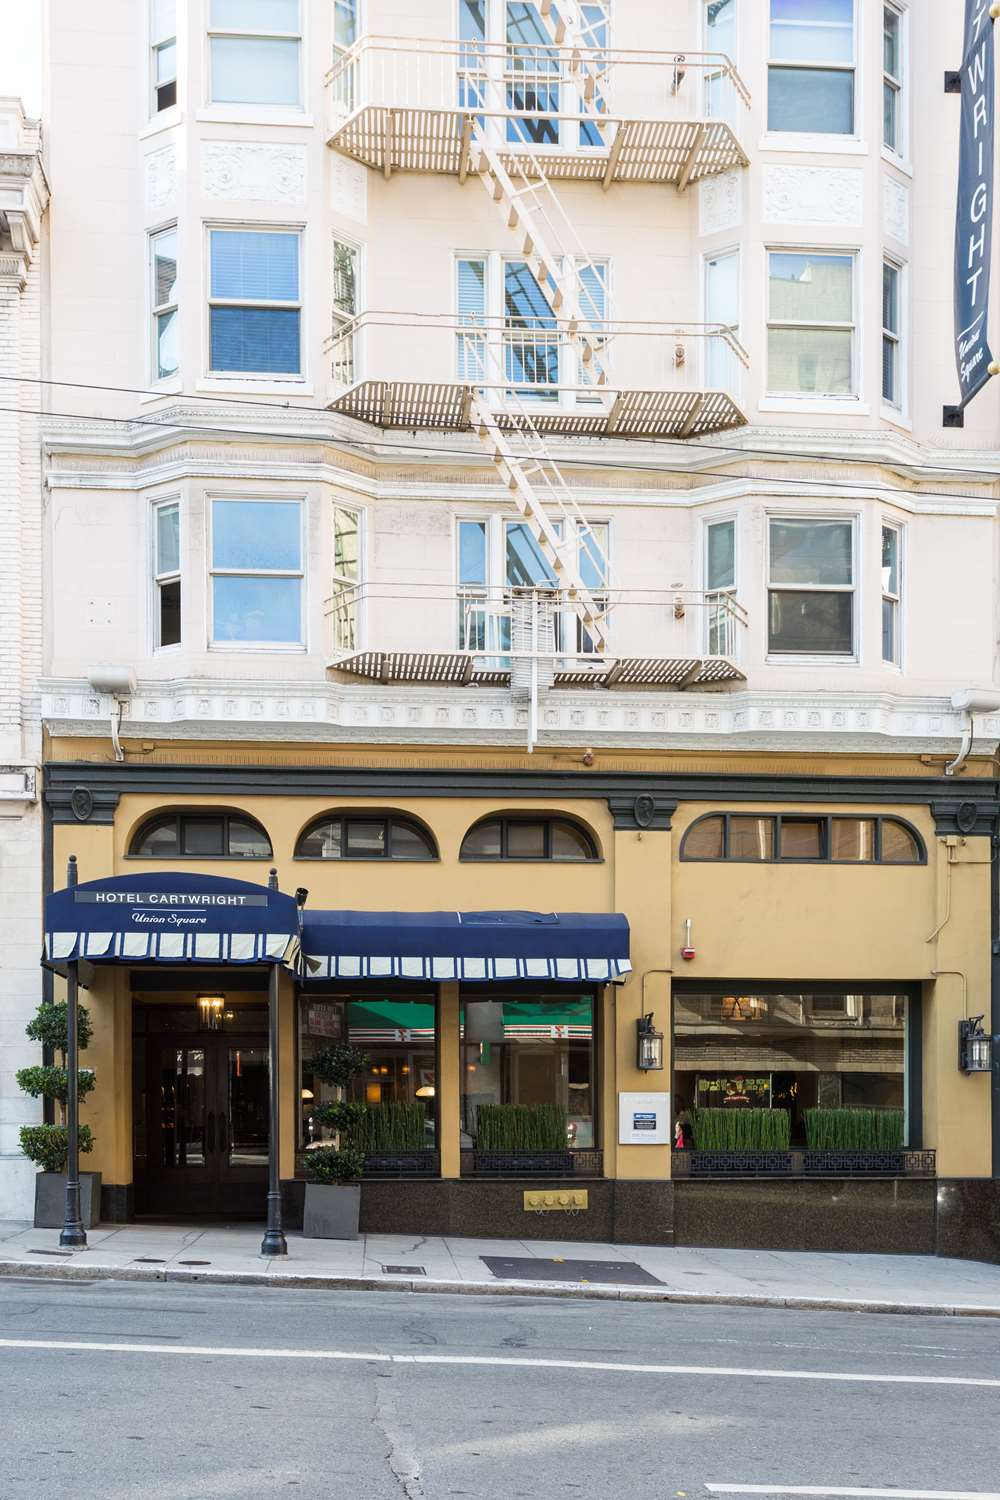 Hotel Union Square San Francisco The Cartwright Hotel Union Square Best Western Premier Collection